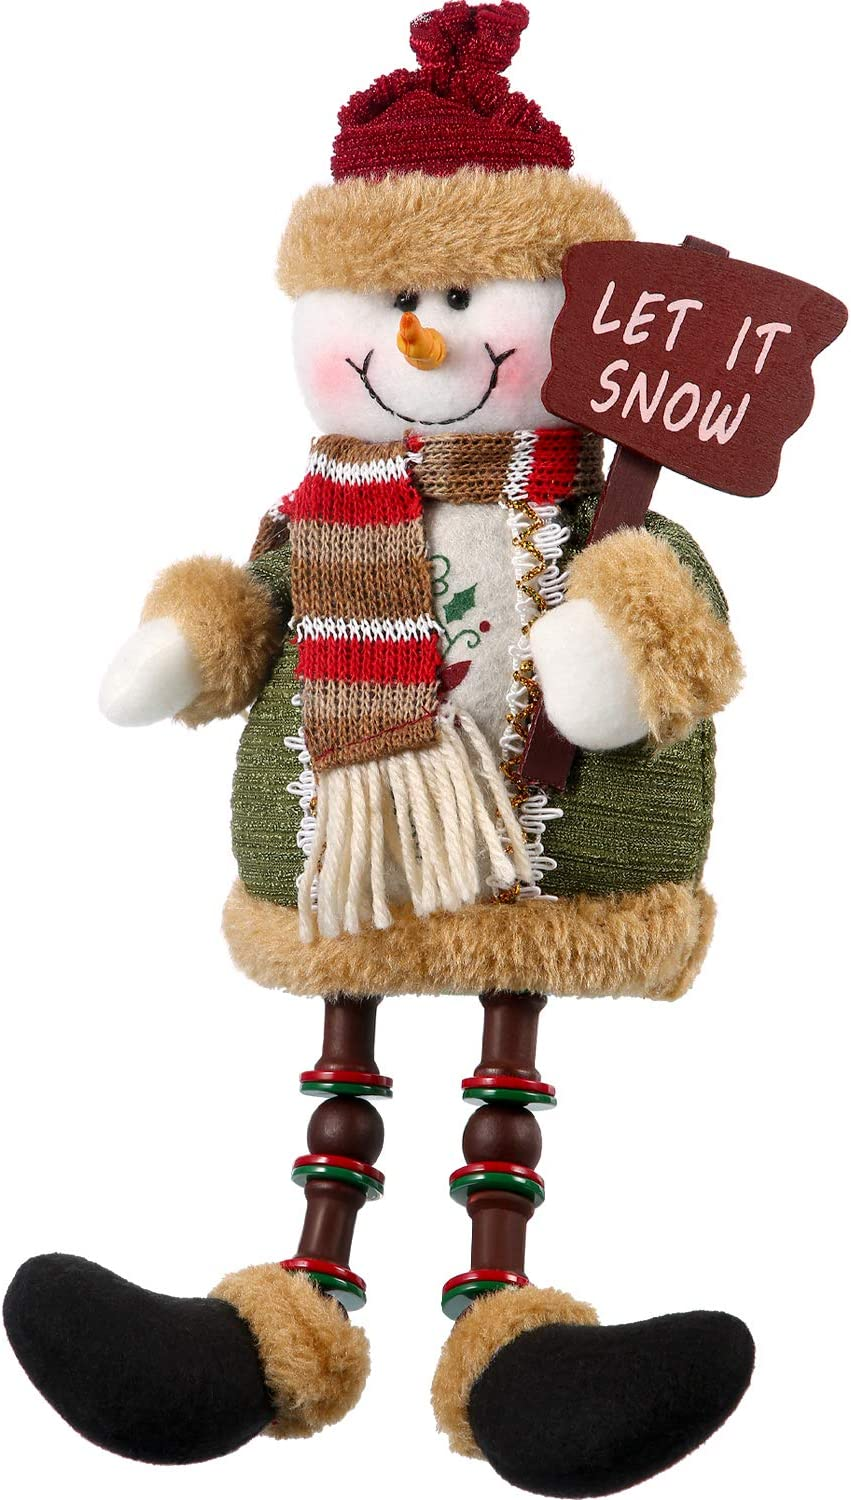 Sumind Christmas Decorations Sitting Snowman Christmas Ornament Long Legs Table Fireplace Decor Home Decoration Xmas Figurines